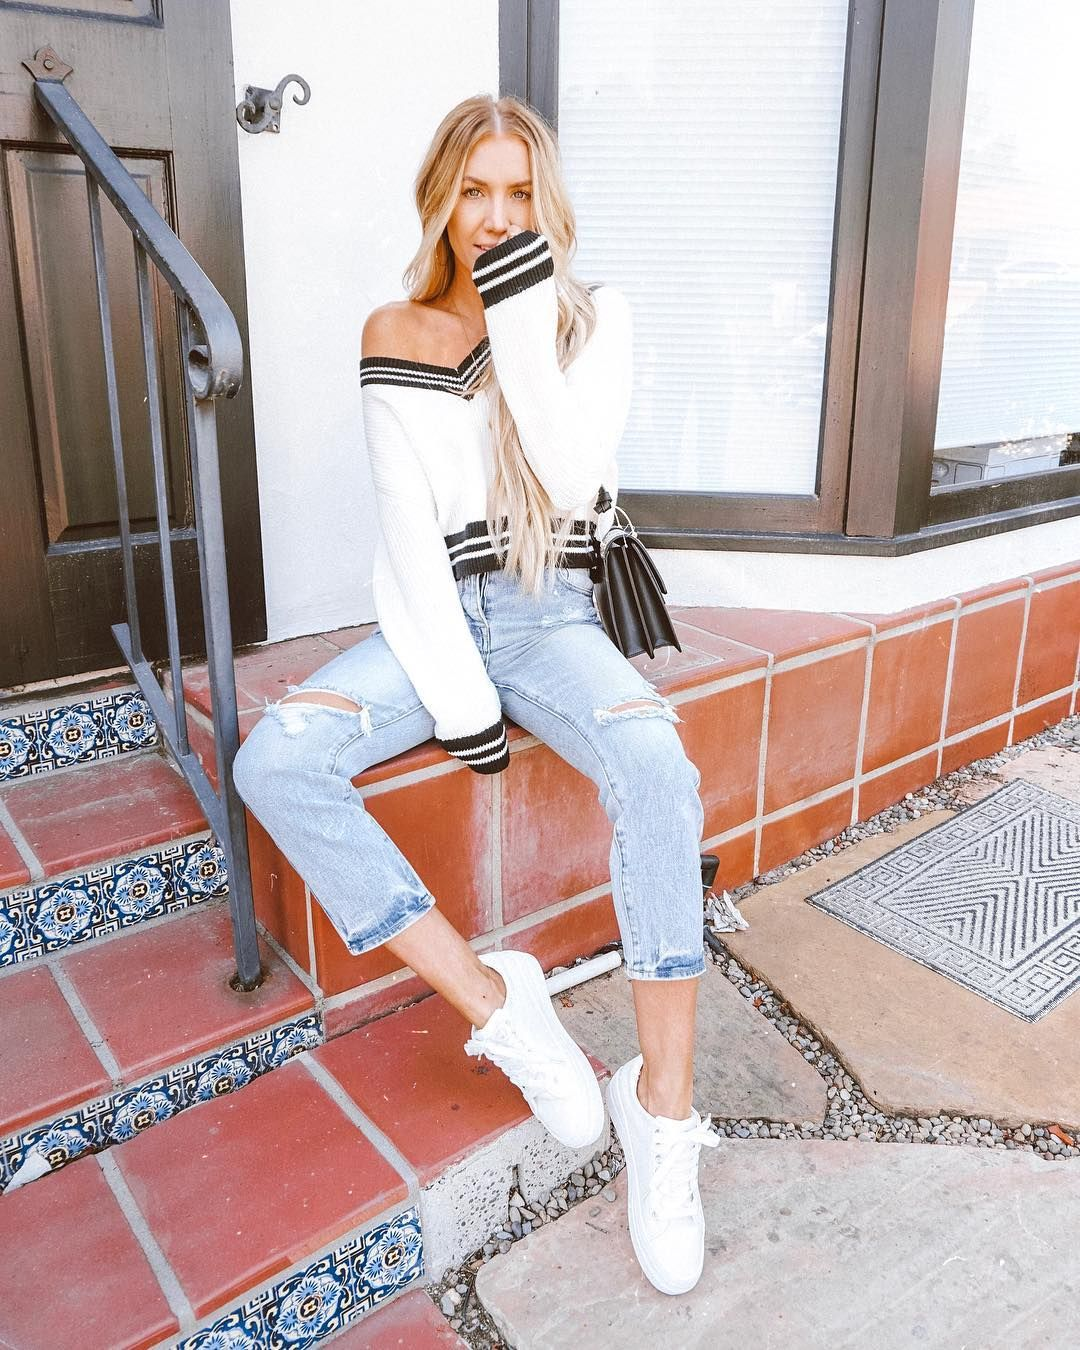 Street style amped up in the Milkyway #sneakers